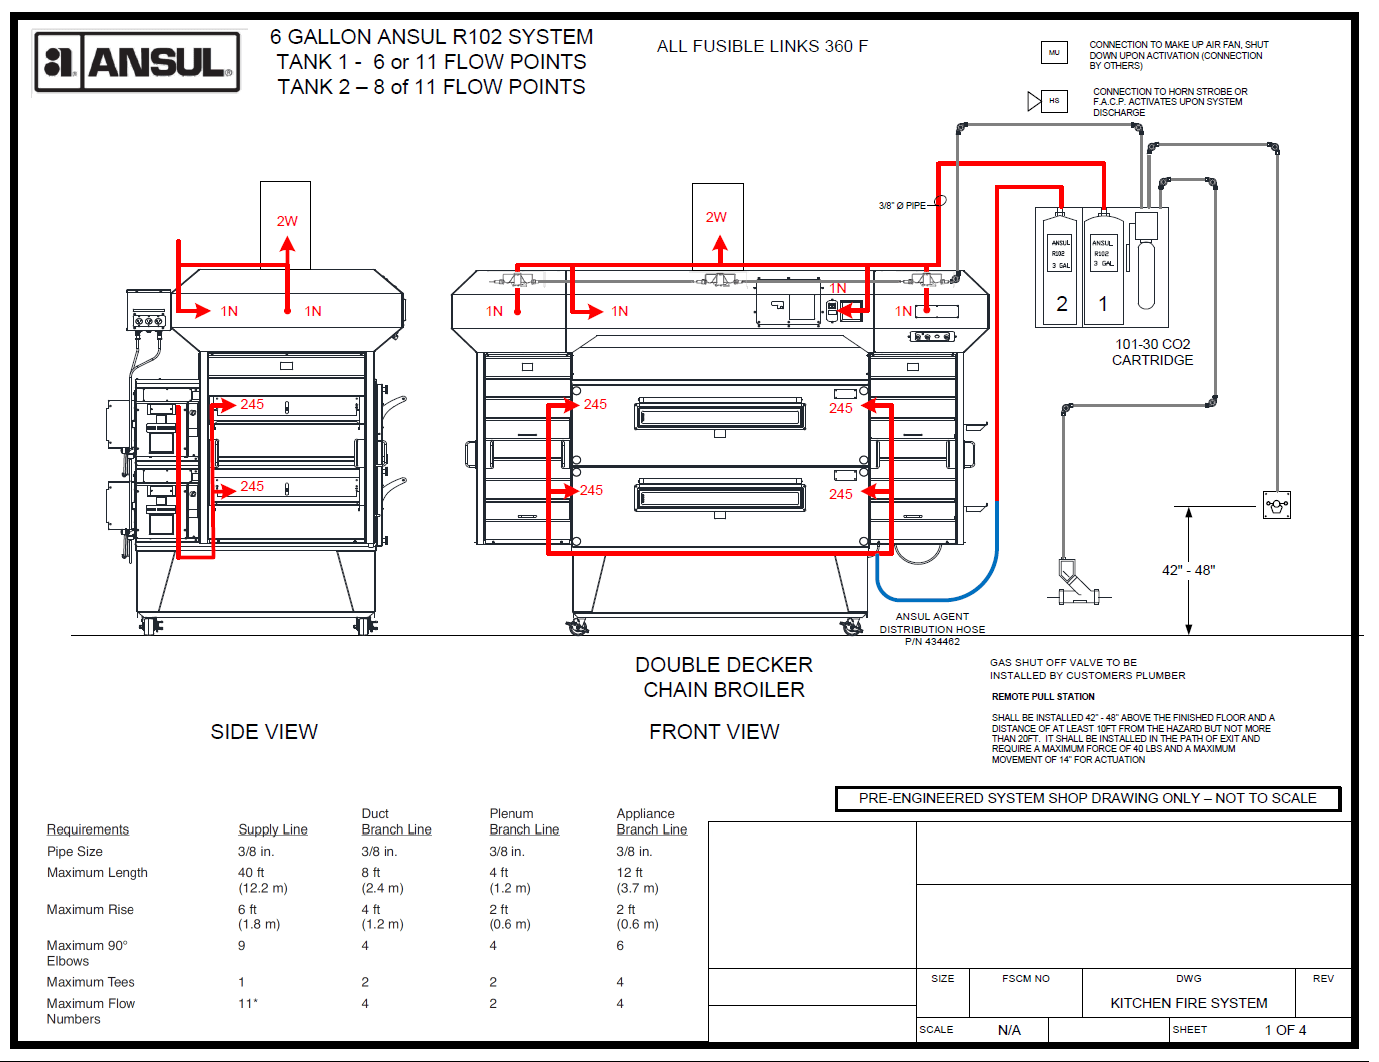 Mack Truck Ch613 Fuse Diagram Rd600 Box Chevy Passlock Wiring 2000 In Addition Ch612 Furthermore